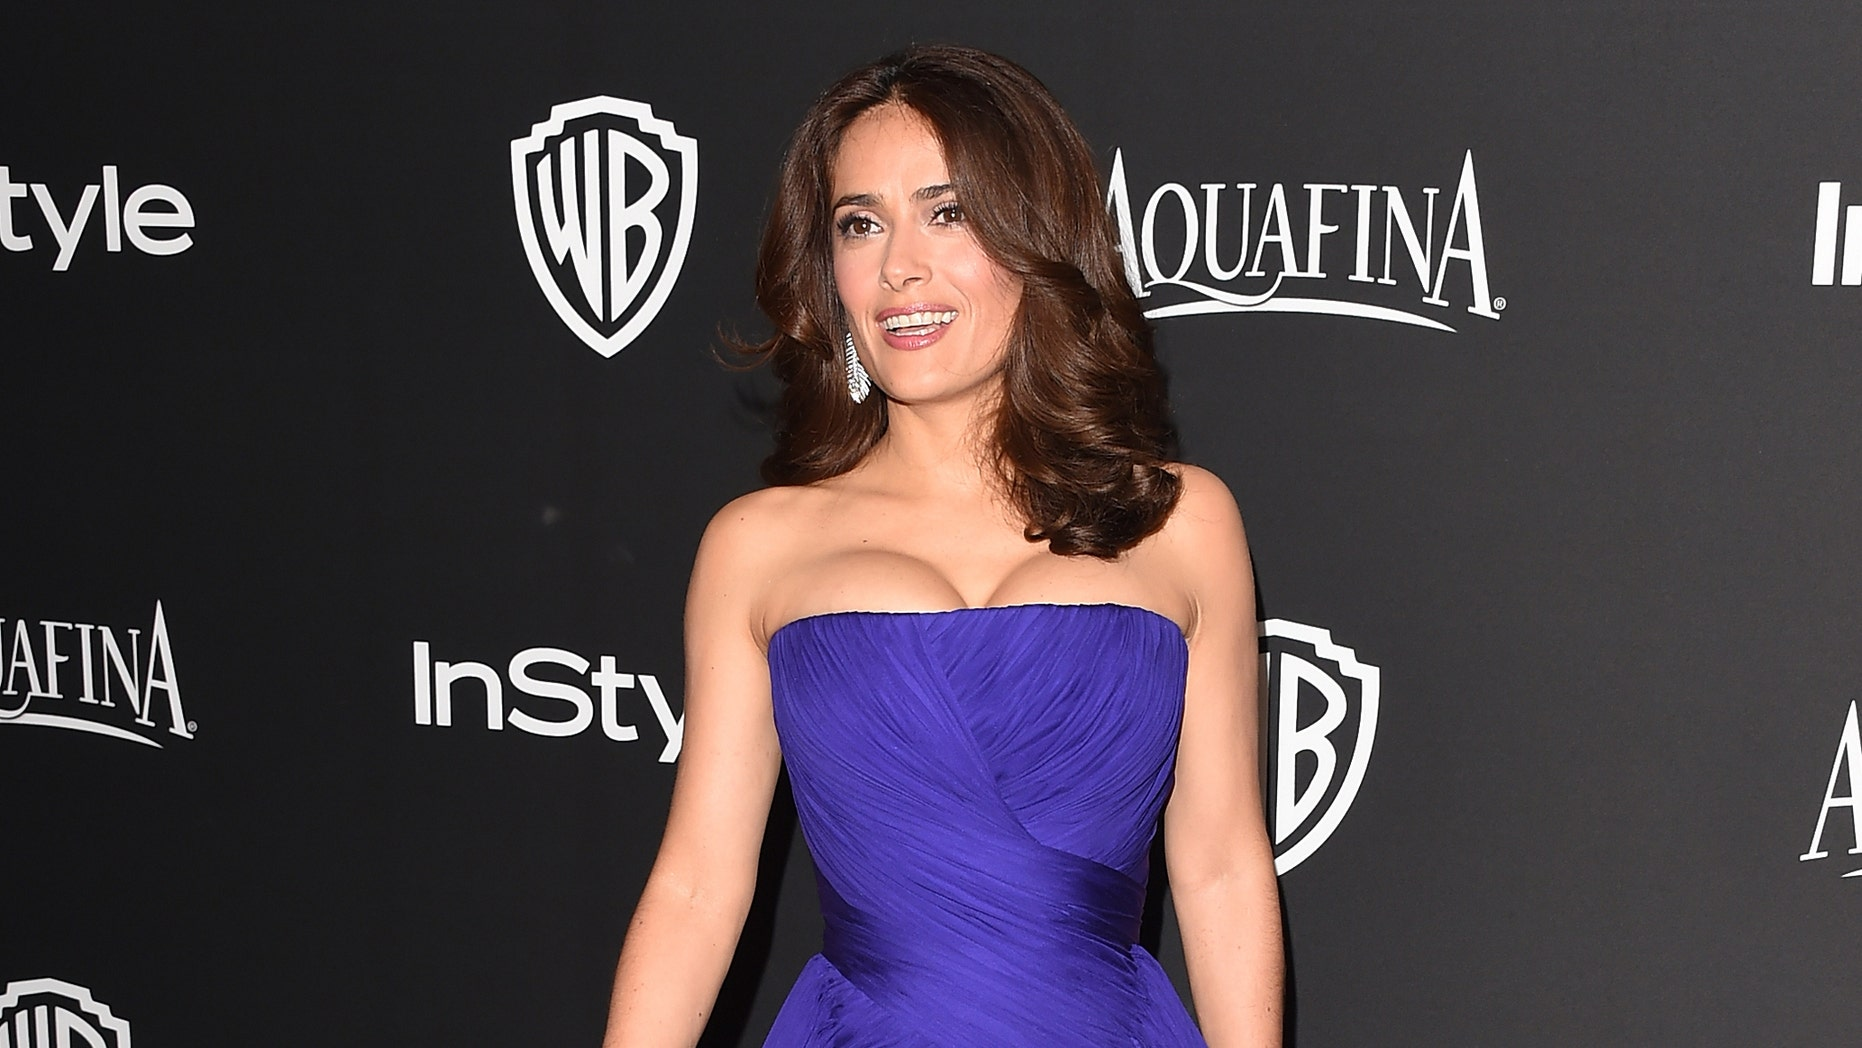 BEVERLY HILLS, CA - JANUARY 11:  Actress Salma Hayek Pinault attends the 2015 InStyle And Warner Bros. 72nd Annual Golden Globe Awards Post-Party at The Beverly Hilton Hotel on January 11, 2015 in Beverly Hills, California.  (Photo by Jason Merritt/Getty Images)